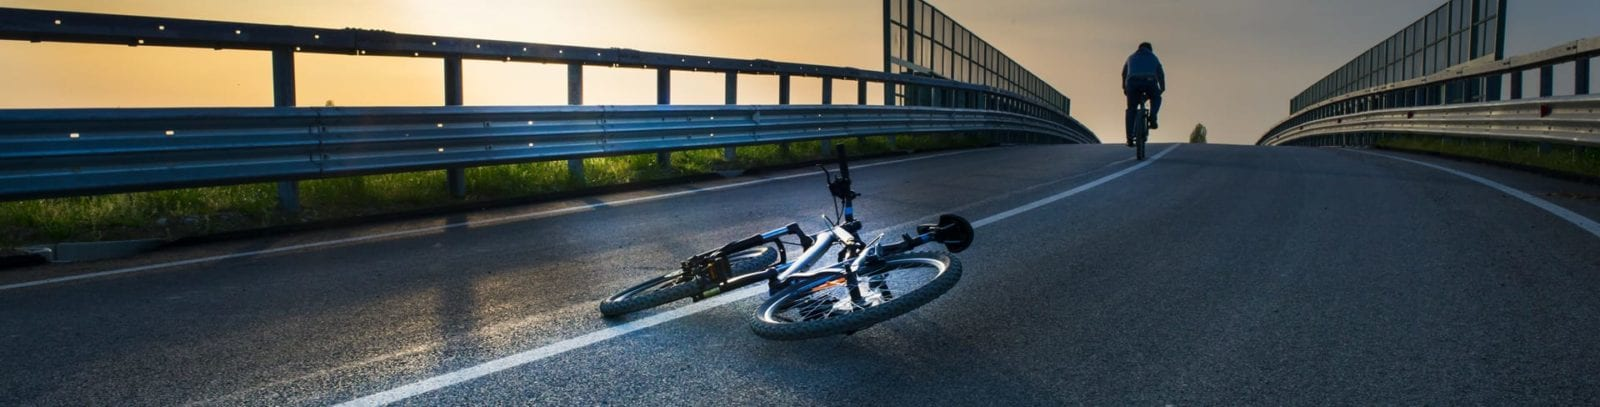 Aftermath of Bicycle Accident On A Suburban Road Stock Photo